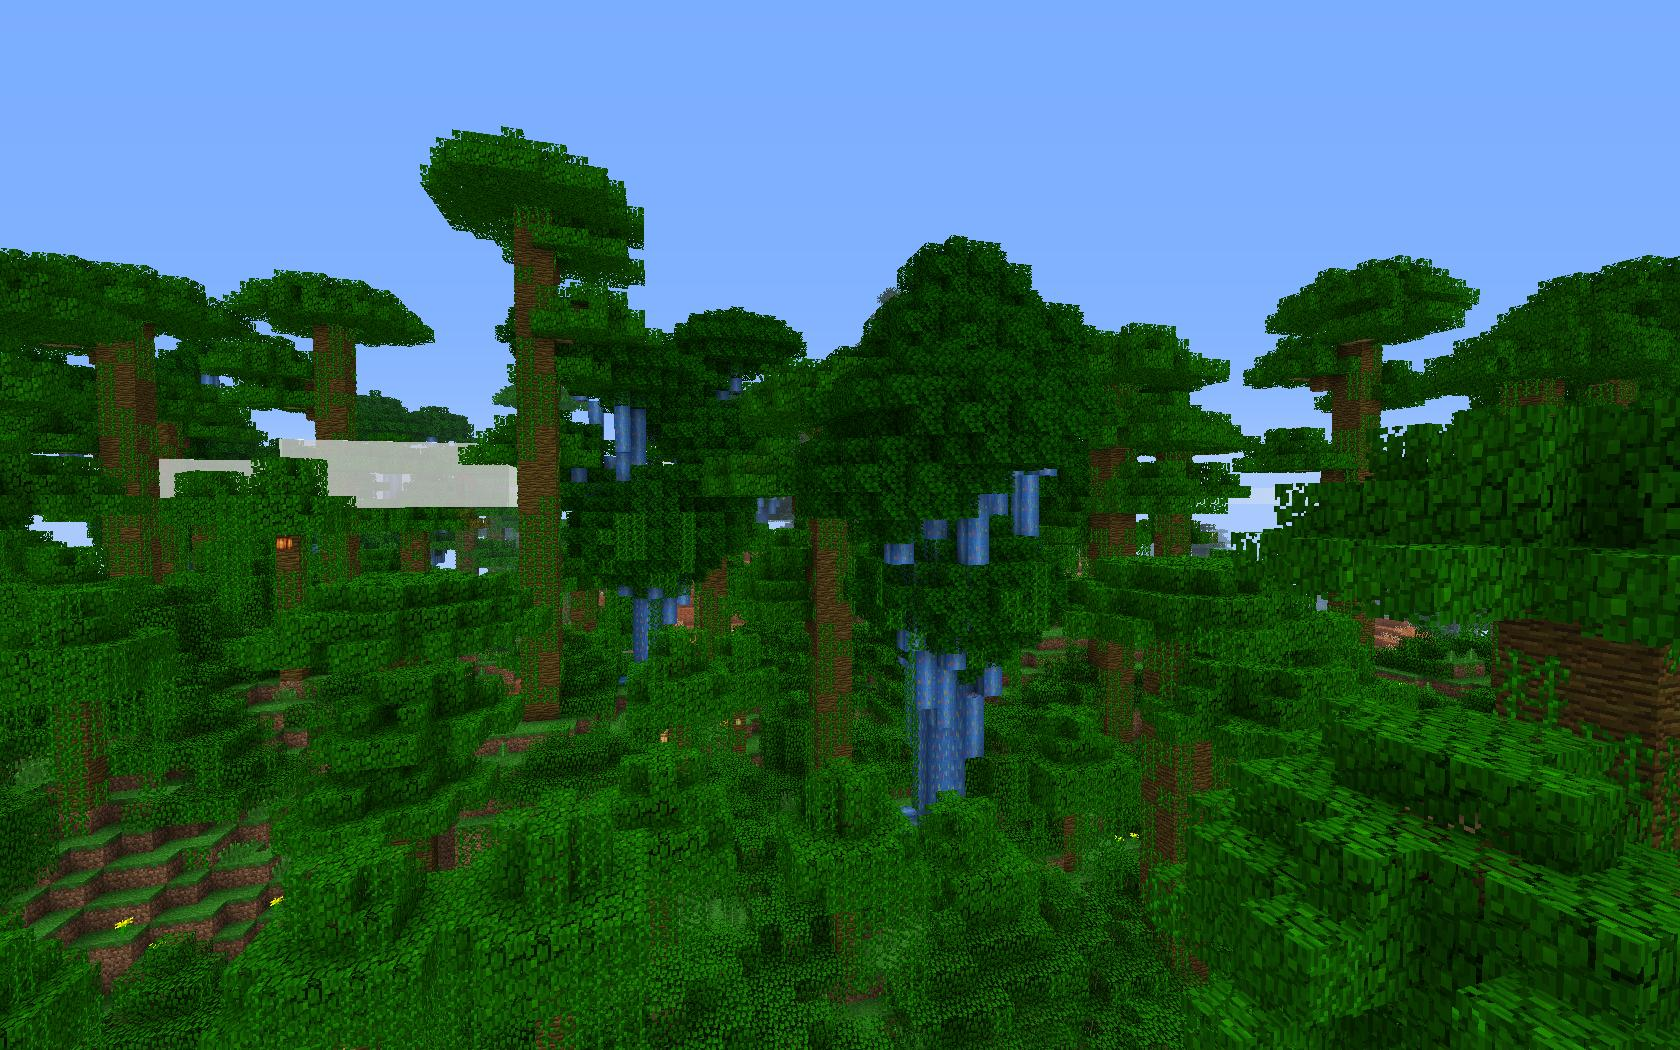 Minecraft Japanese Tree list of biomes · extrabiomesxl/extrabiomesxl wiki · github